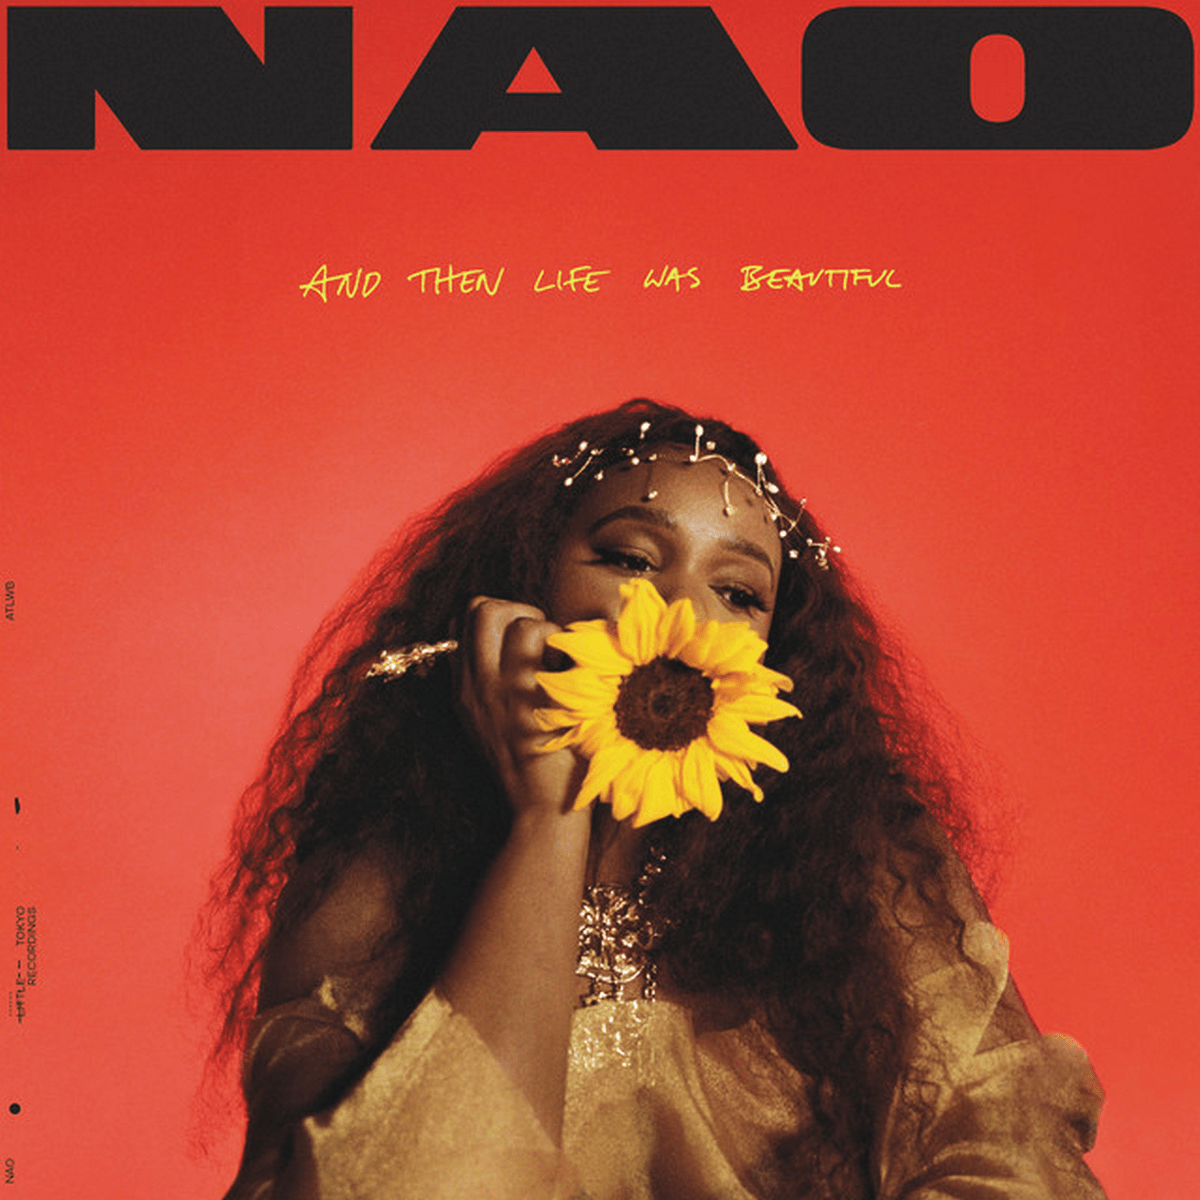 3 ways to practice Self-Care with NAO's new album   And Then Life Was Beautiful